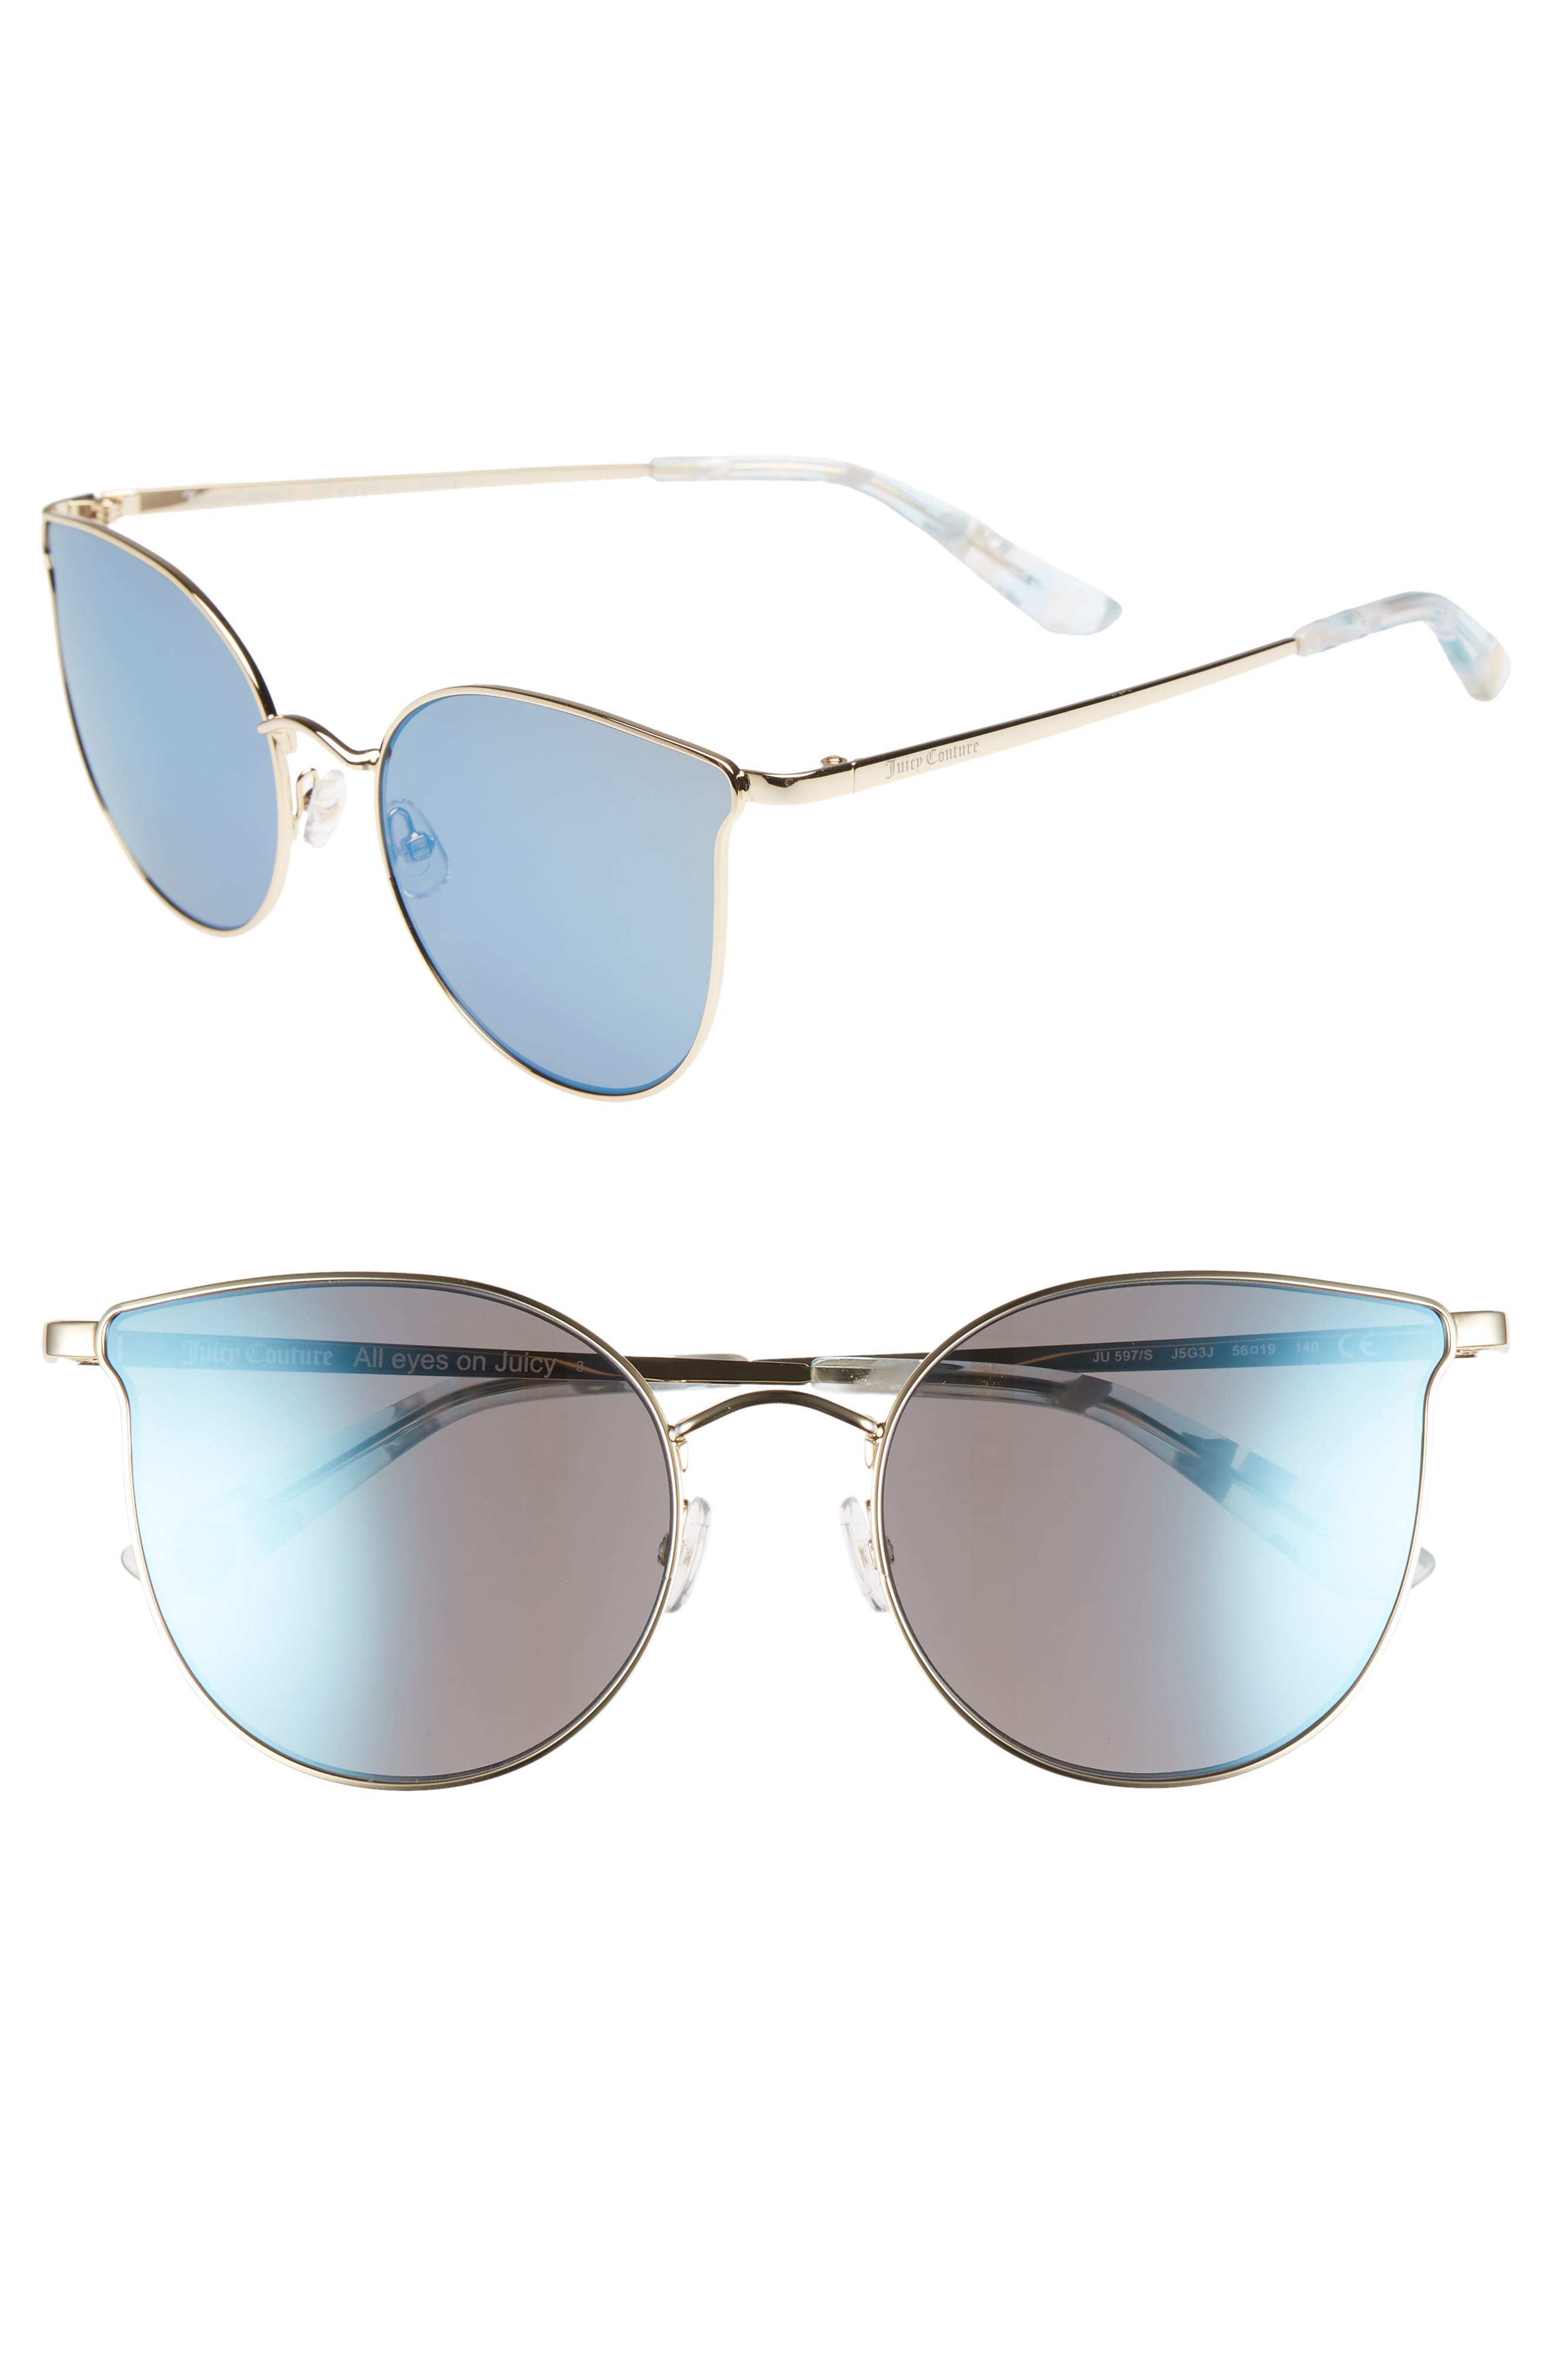 JUICY COUTURE 56MM METAL CAT EYE SUNGLASSES - GOLD